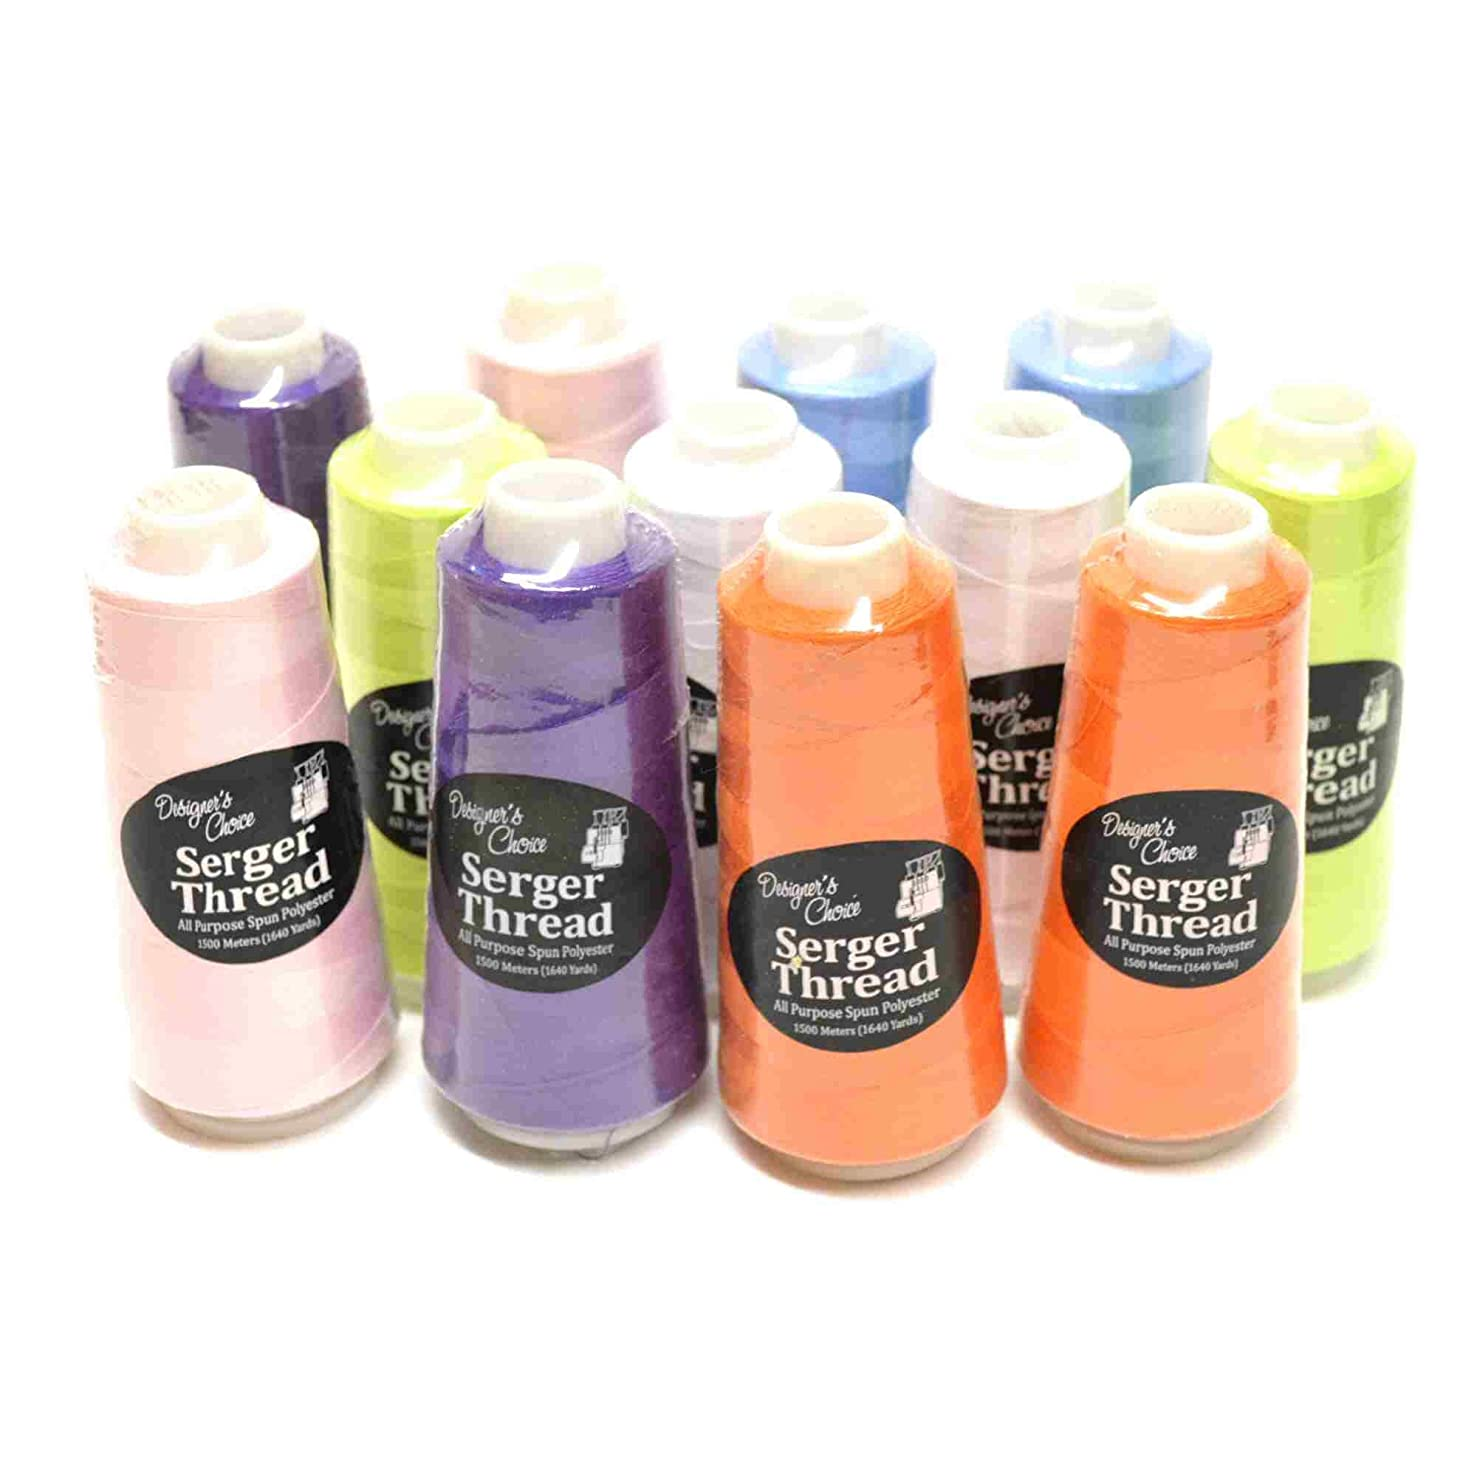 Bundle Set of 12 BRIGHT Overlock Serger Quilting Embroidery Thread Cones 2 each Asst Colors 1500 M